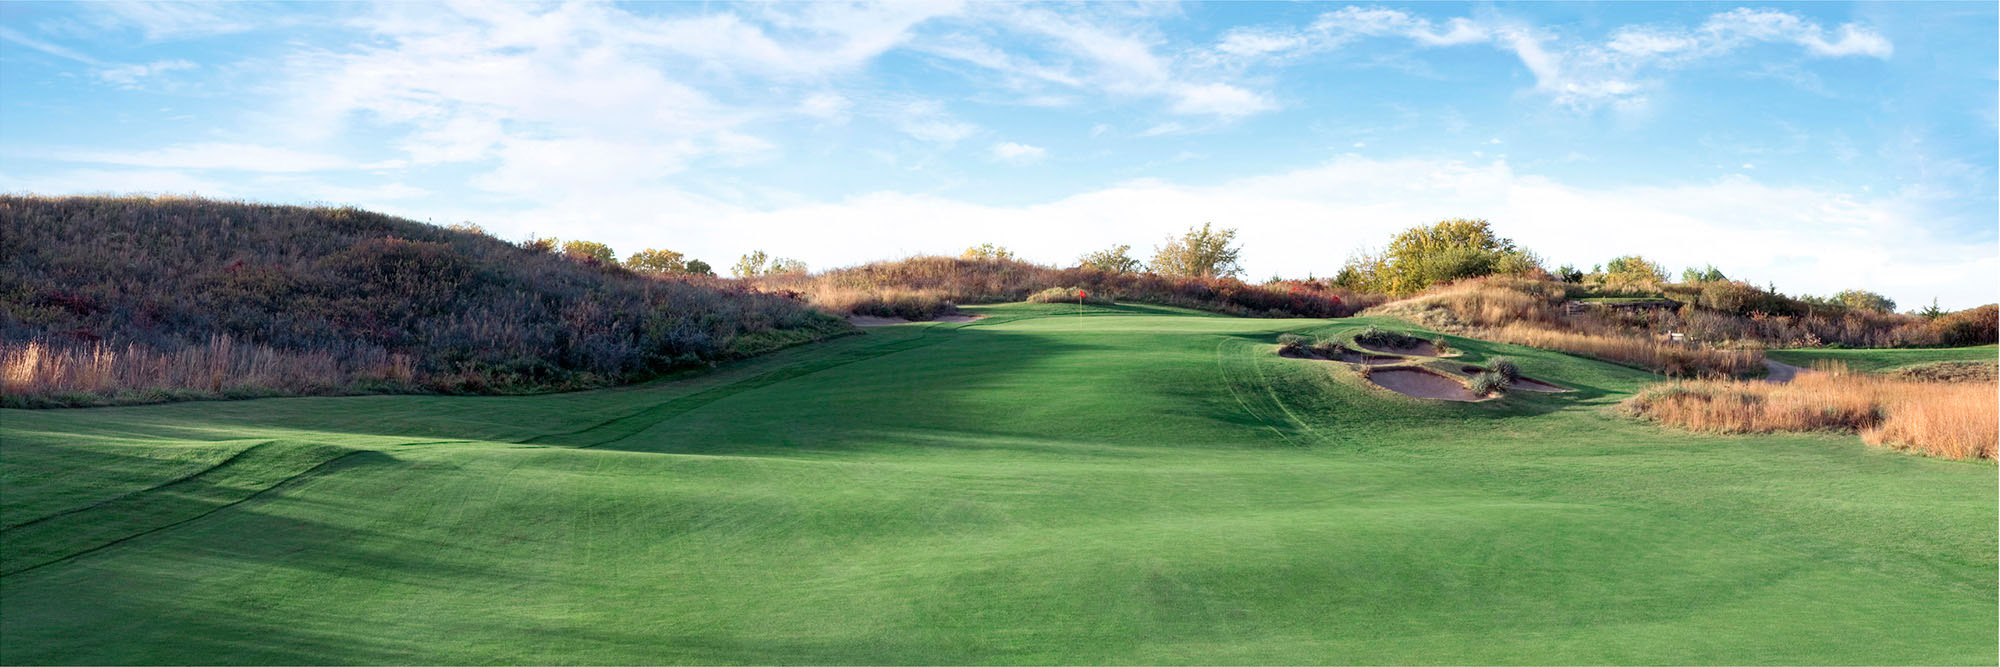 Golf Course Image - Prairie Dunes Country Club No. 8